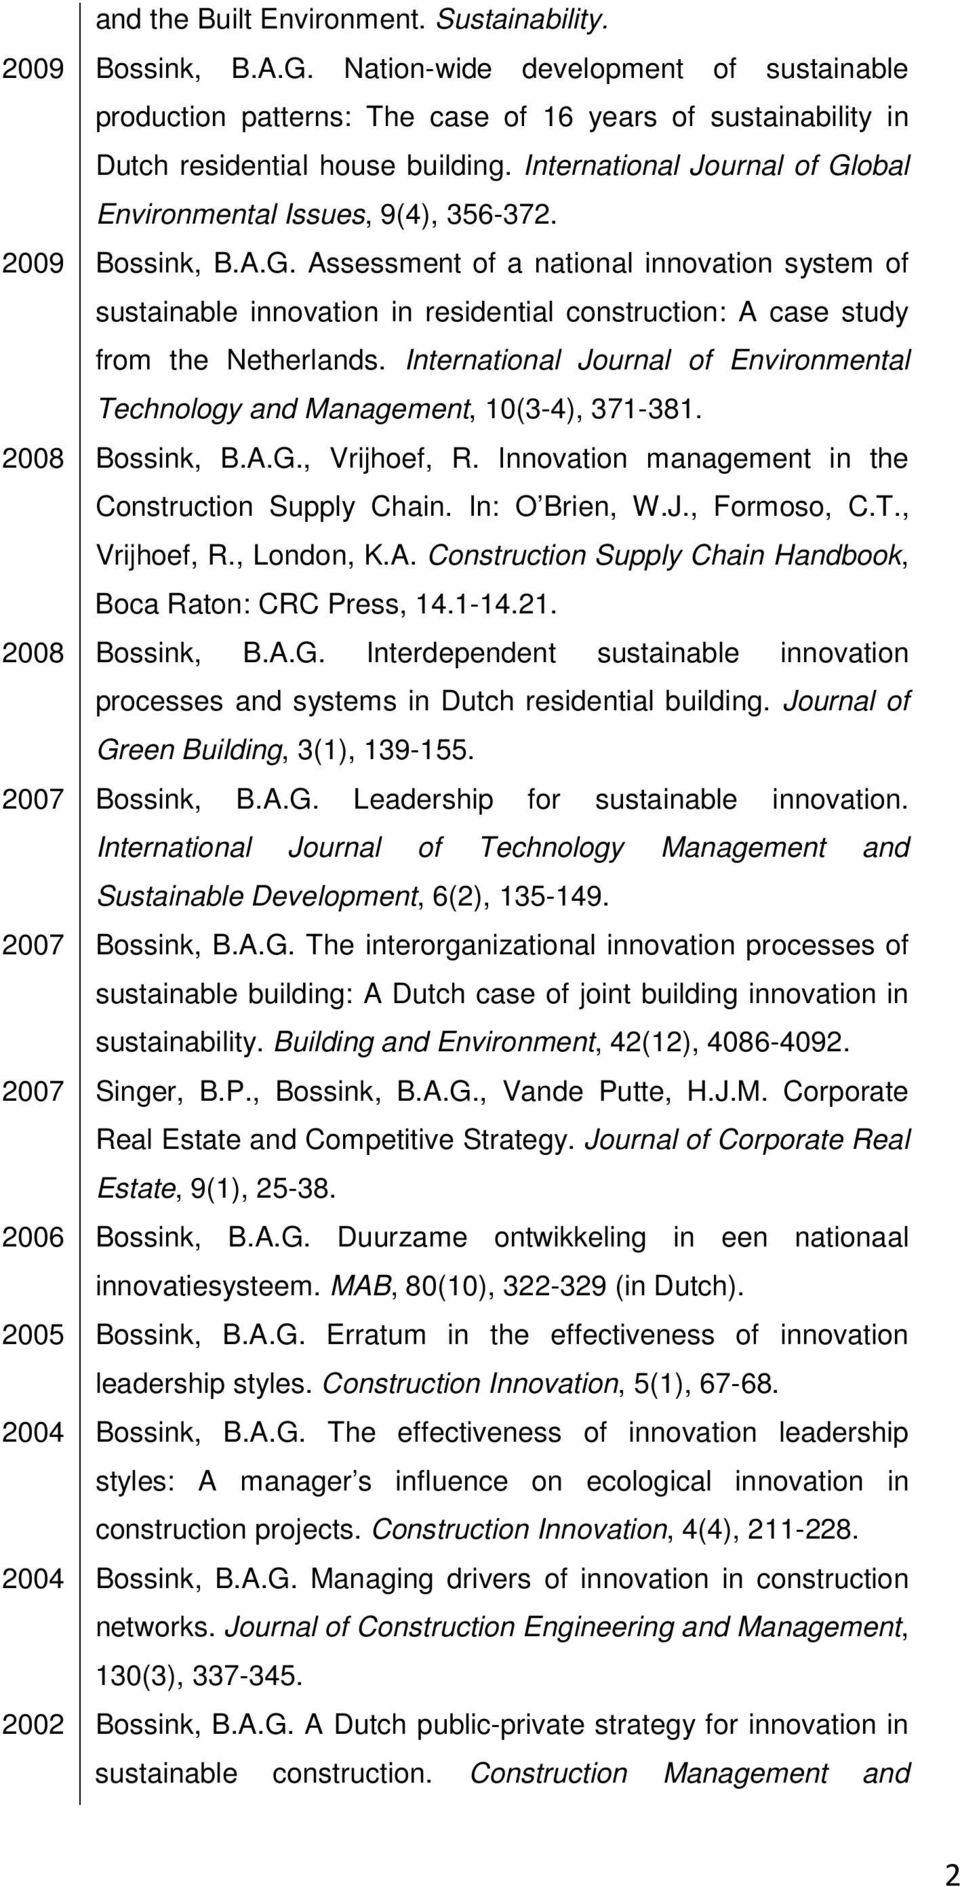 International Journal of Global Environmental Issues, 9(4), 356-372. Bossink, B.A.G. Assessment of a national innovation system of sustainable innovation in residential construction: A case study from the Netherlands.